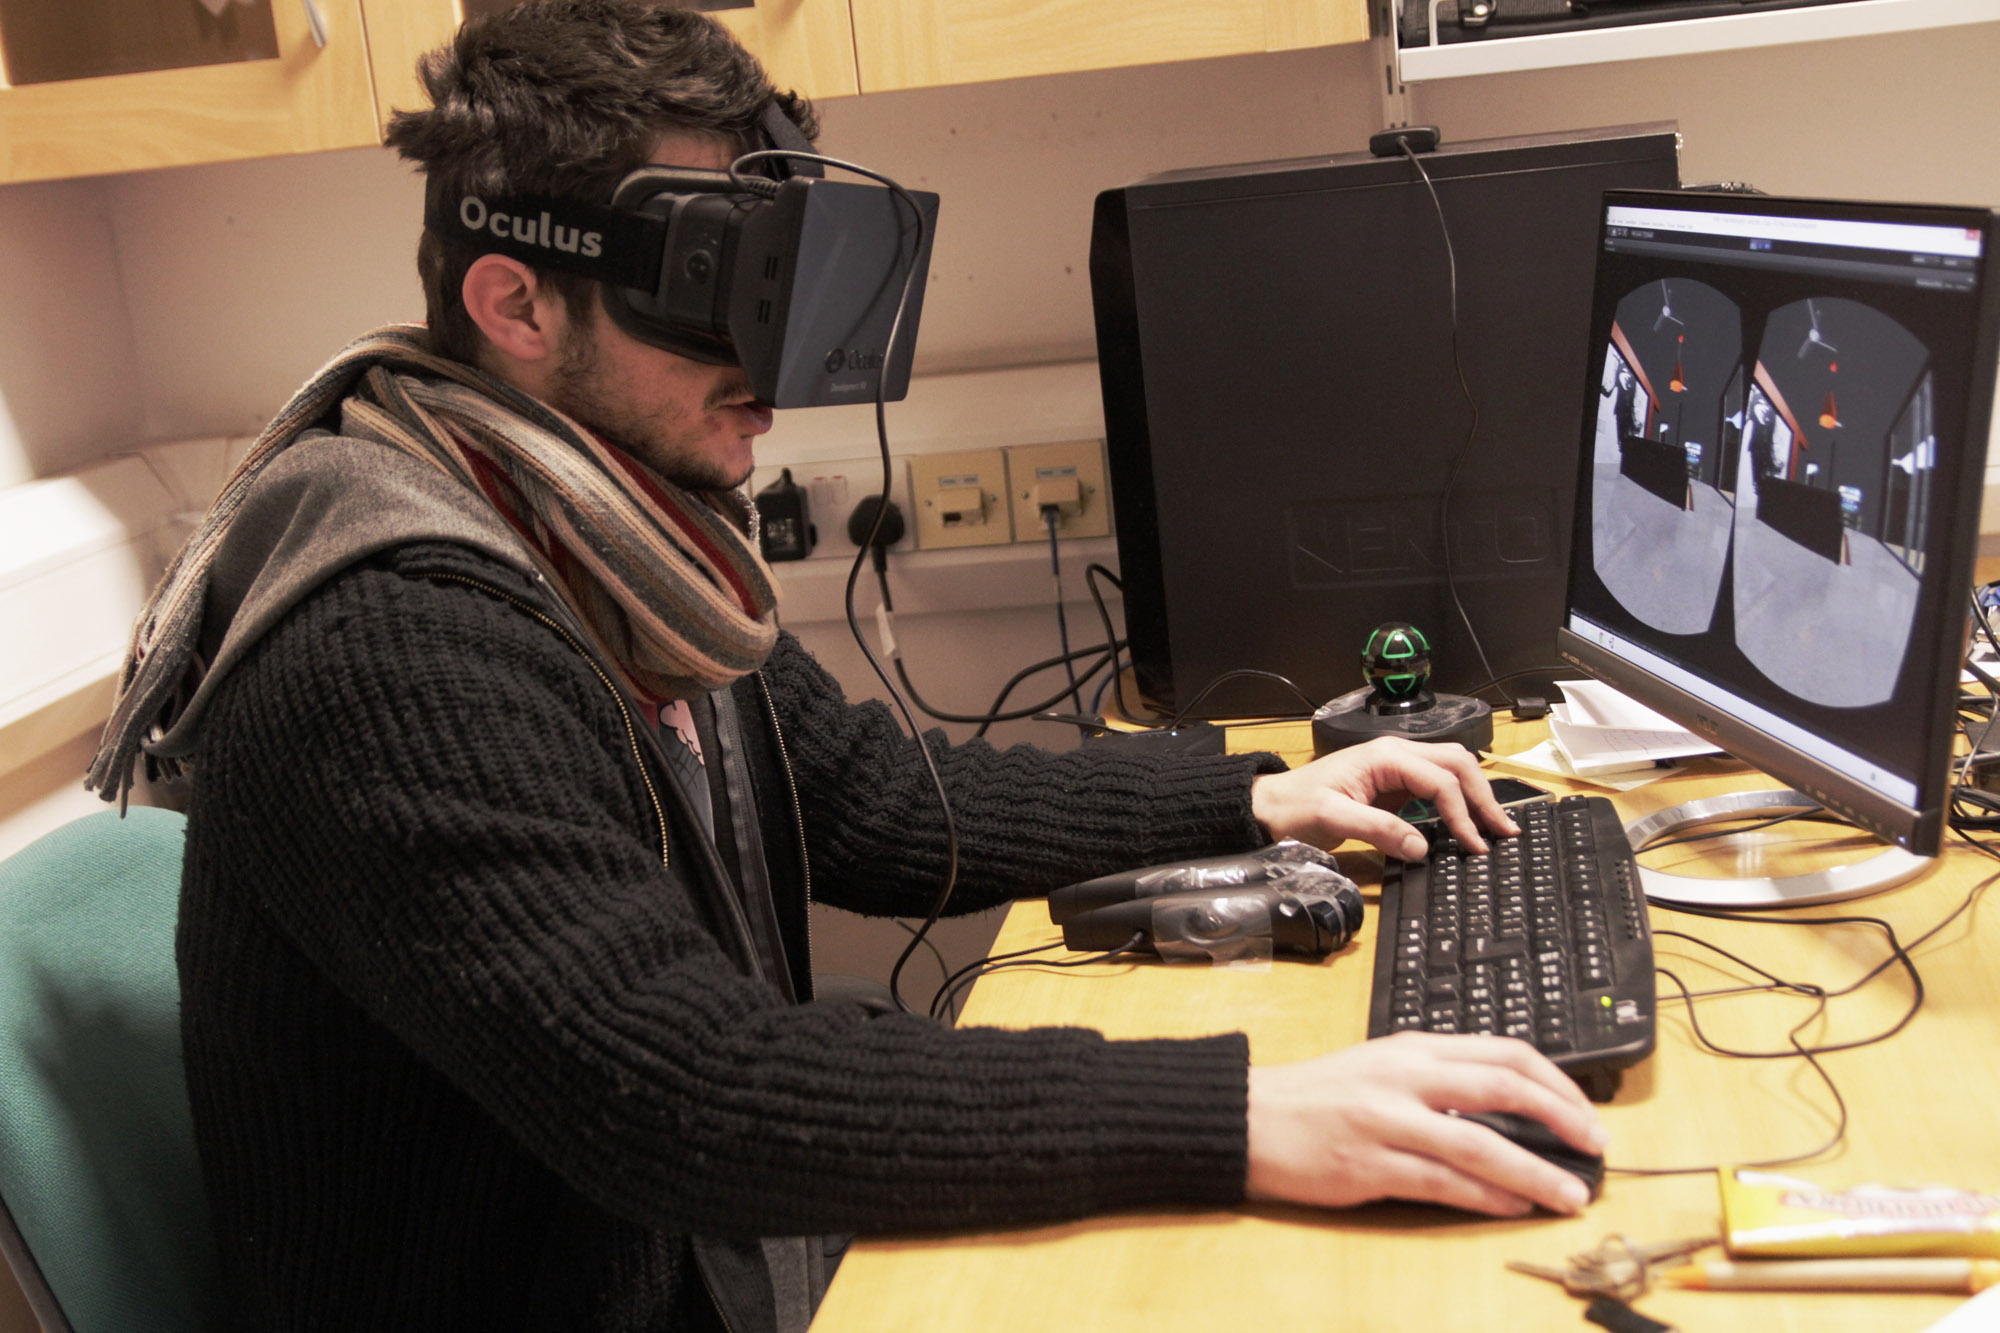 Immersive VR with Head-Mounted-Displays